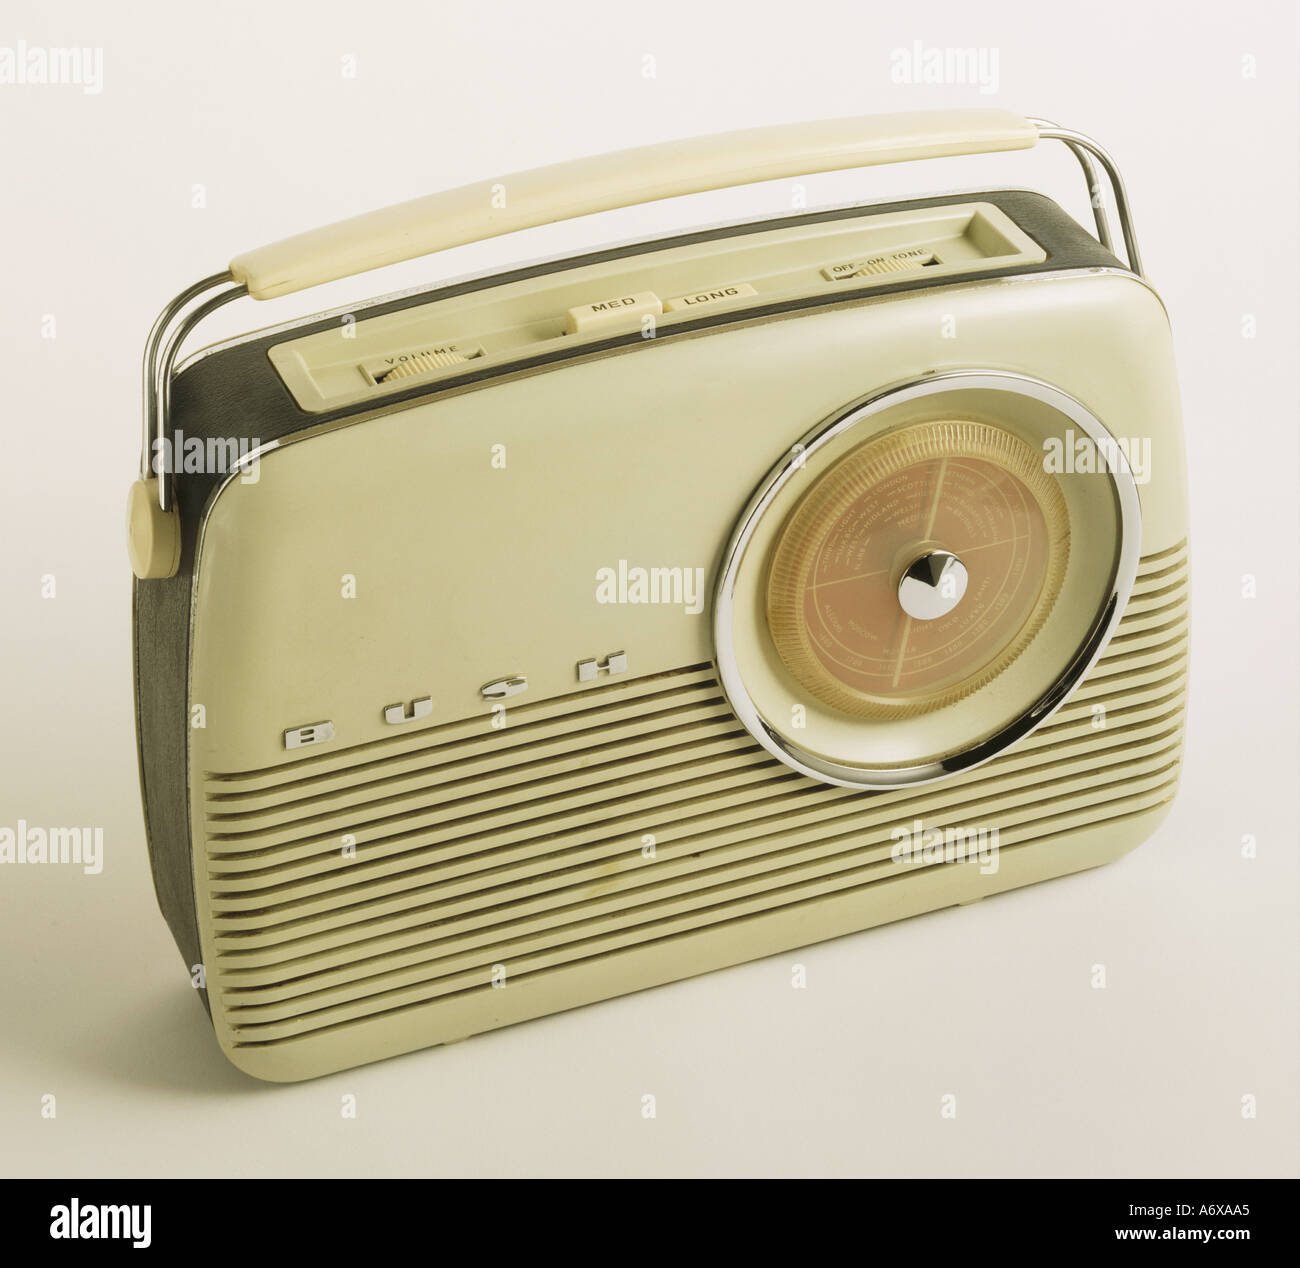 Bush TR 82 C Radio. United Kingdom, 1959. EDITORIAL USE ONLY. - Stock Image